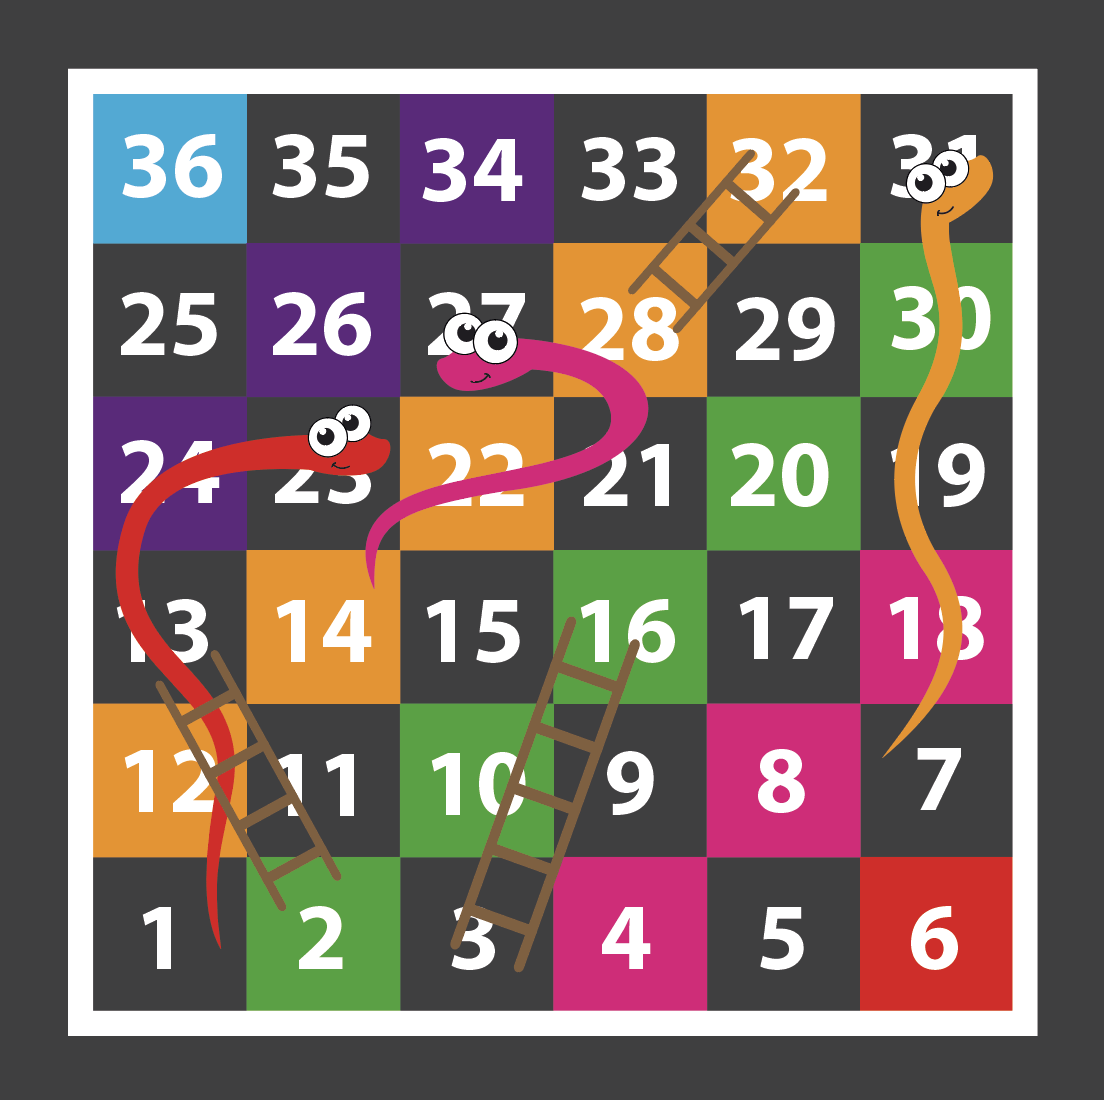 A Snakes & Ladders 1-36 Every Other Playground Marking